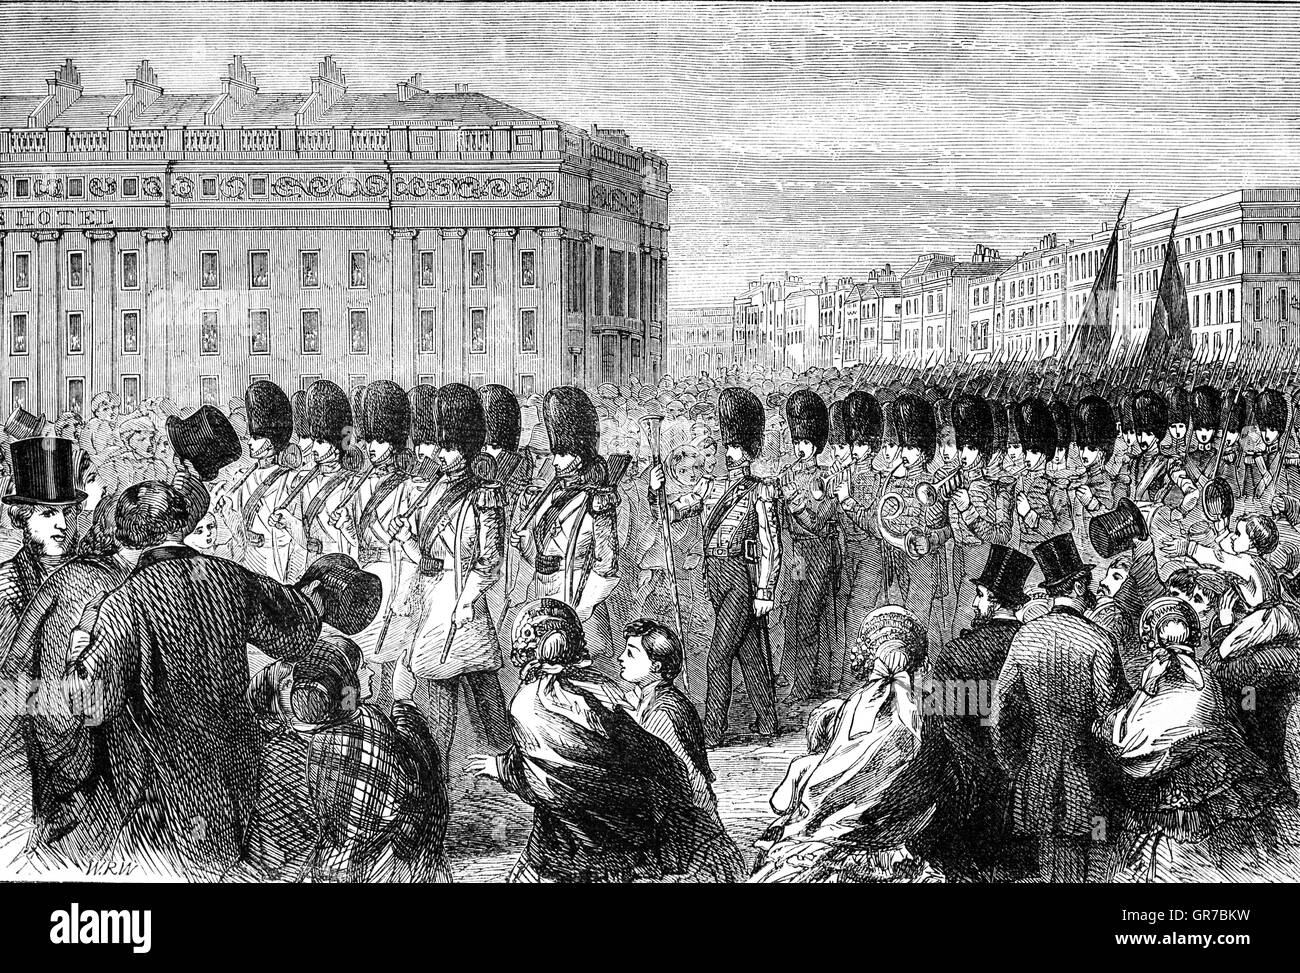 The Departure of the Grenadier Guards from London for the Crimean War 1854. - Stock Image